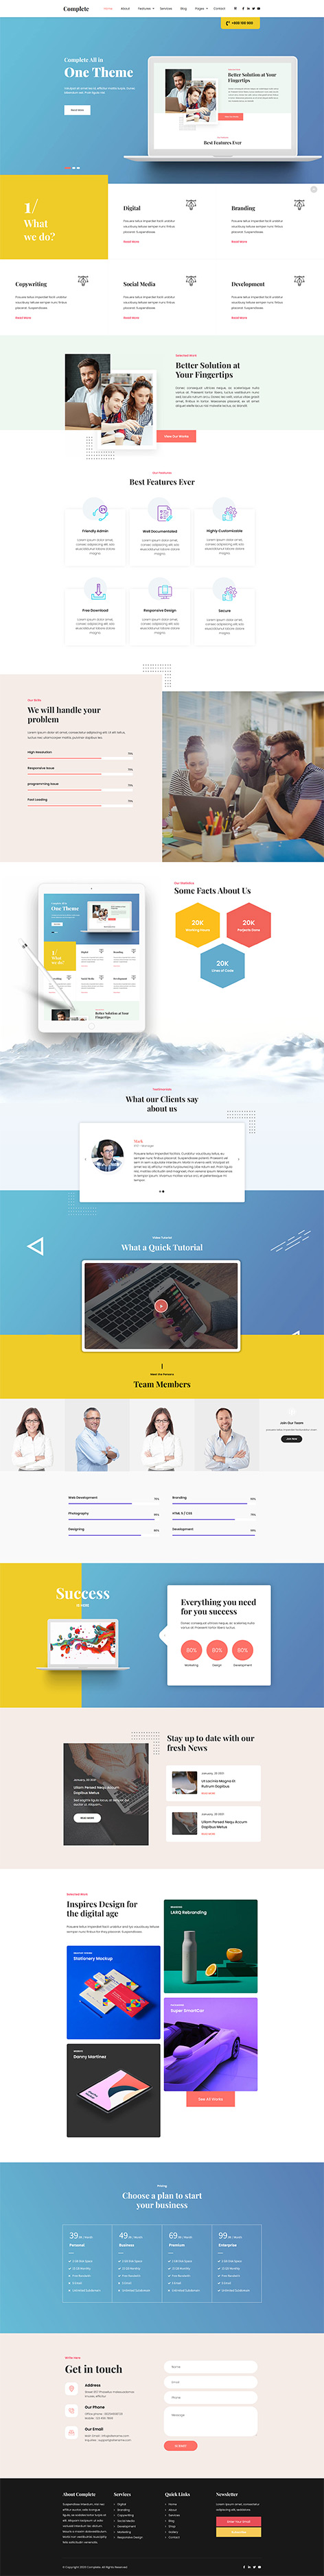 complete WordPress theme